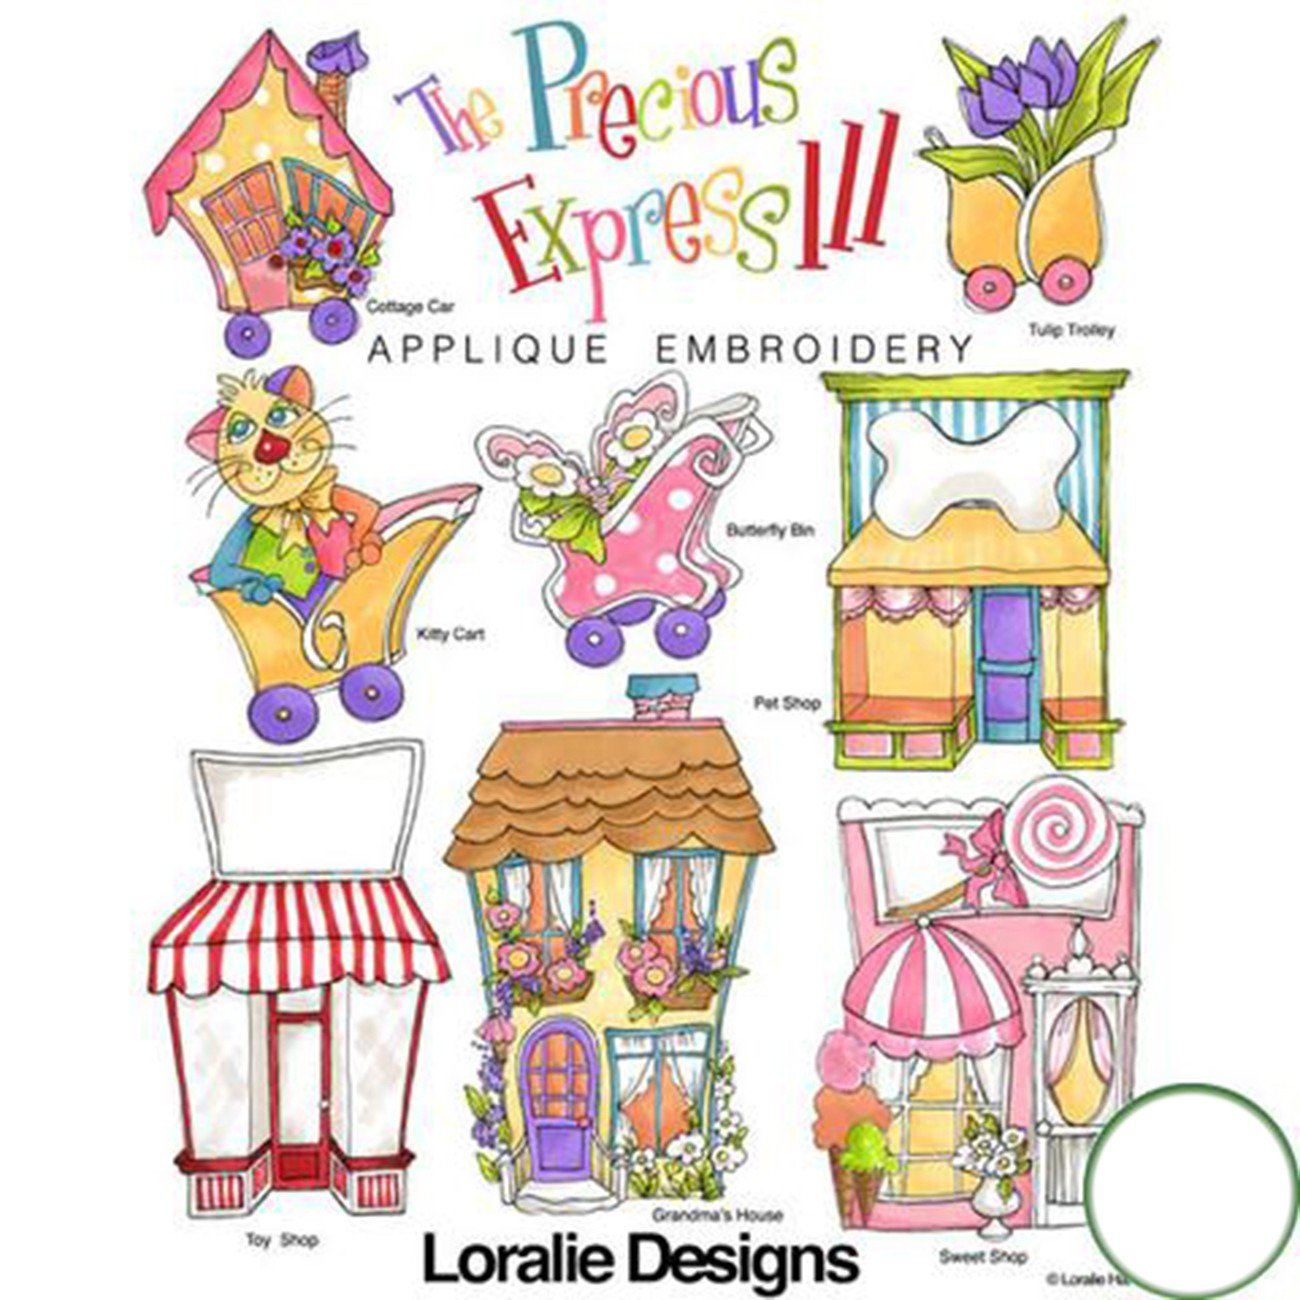 The Precious Express 3 Machine Embroidery Design Collection